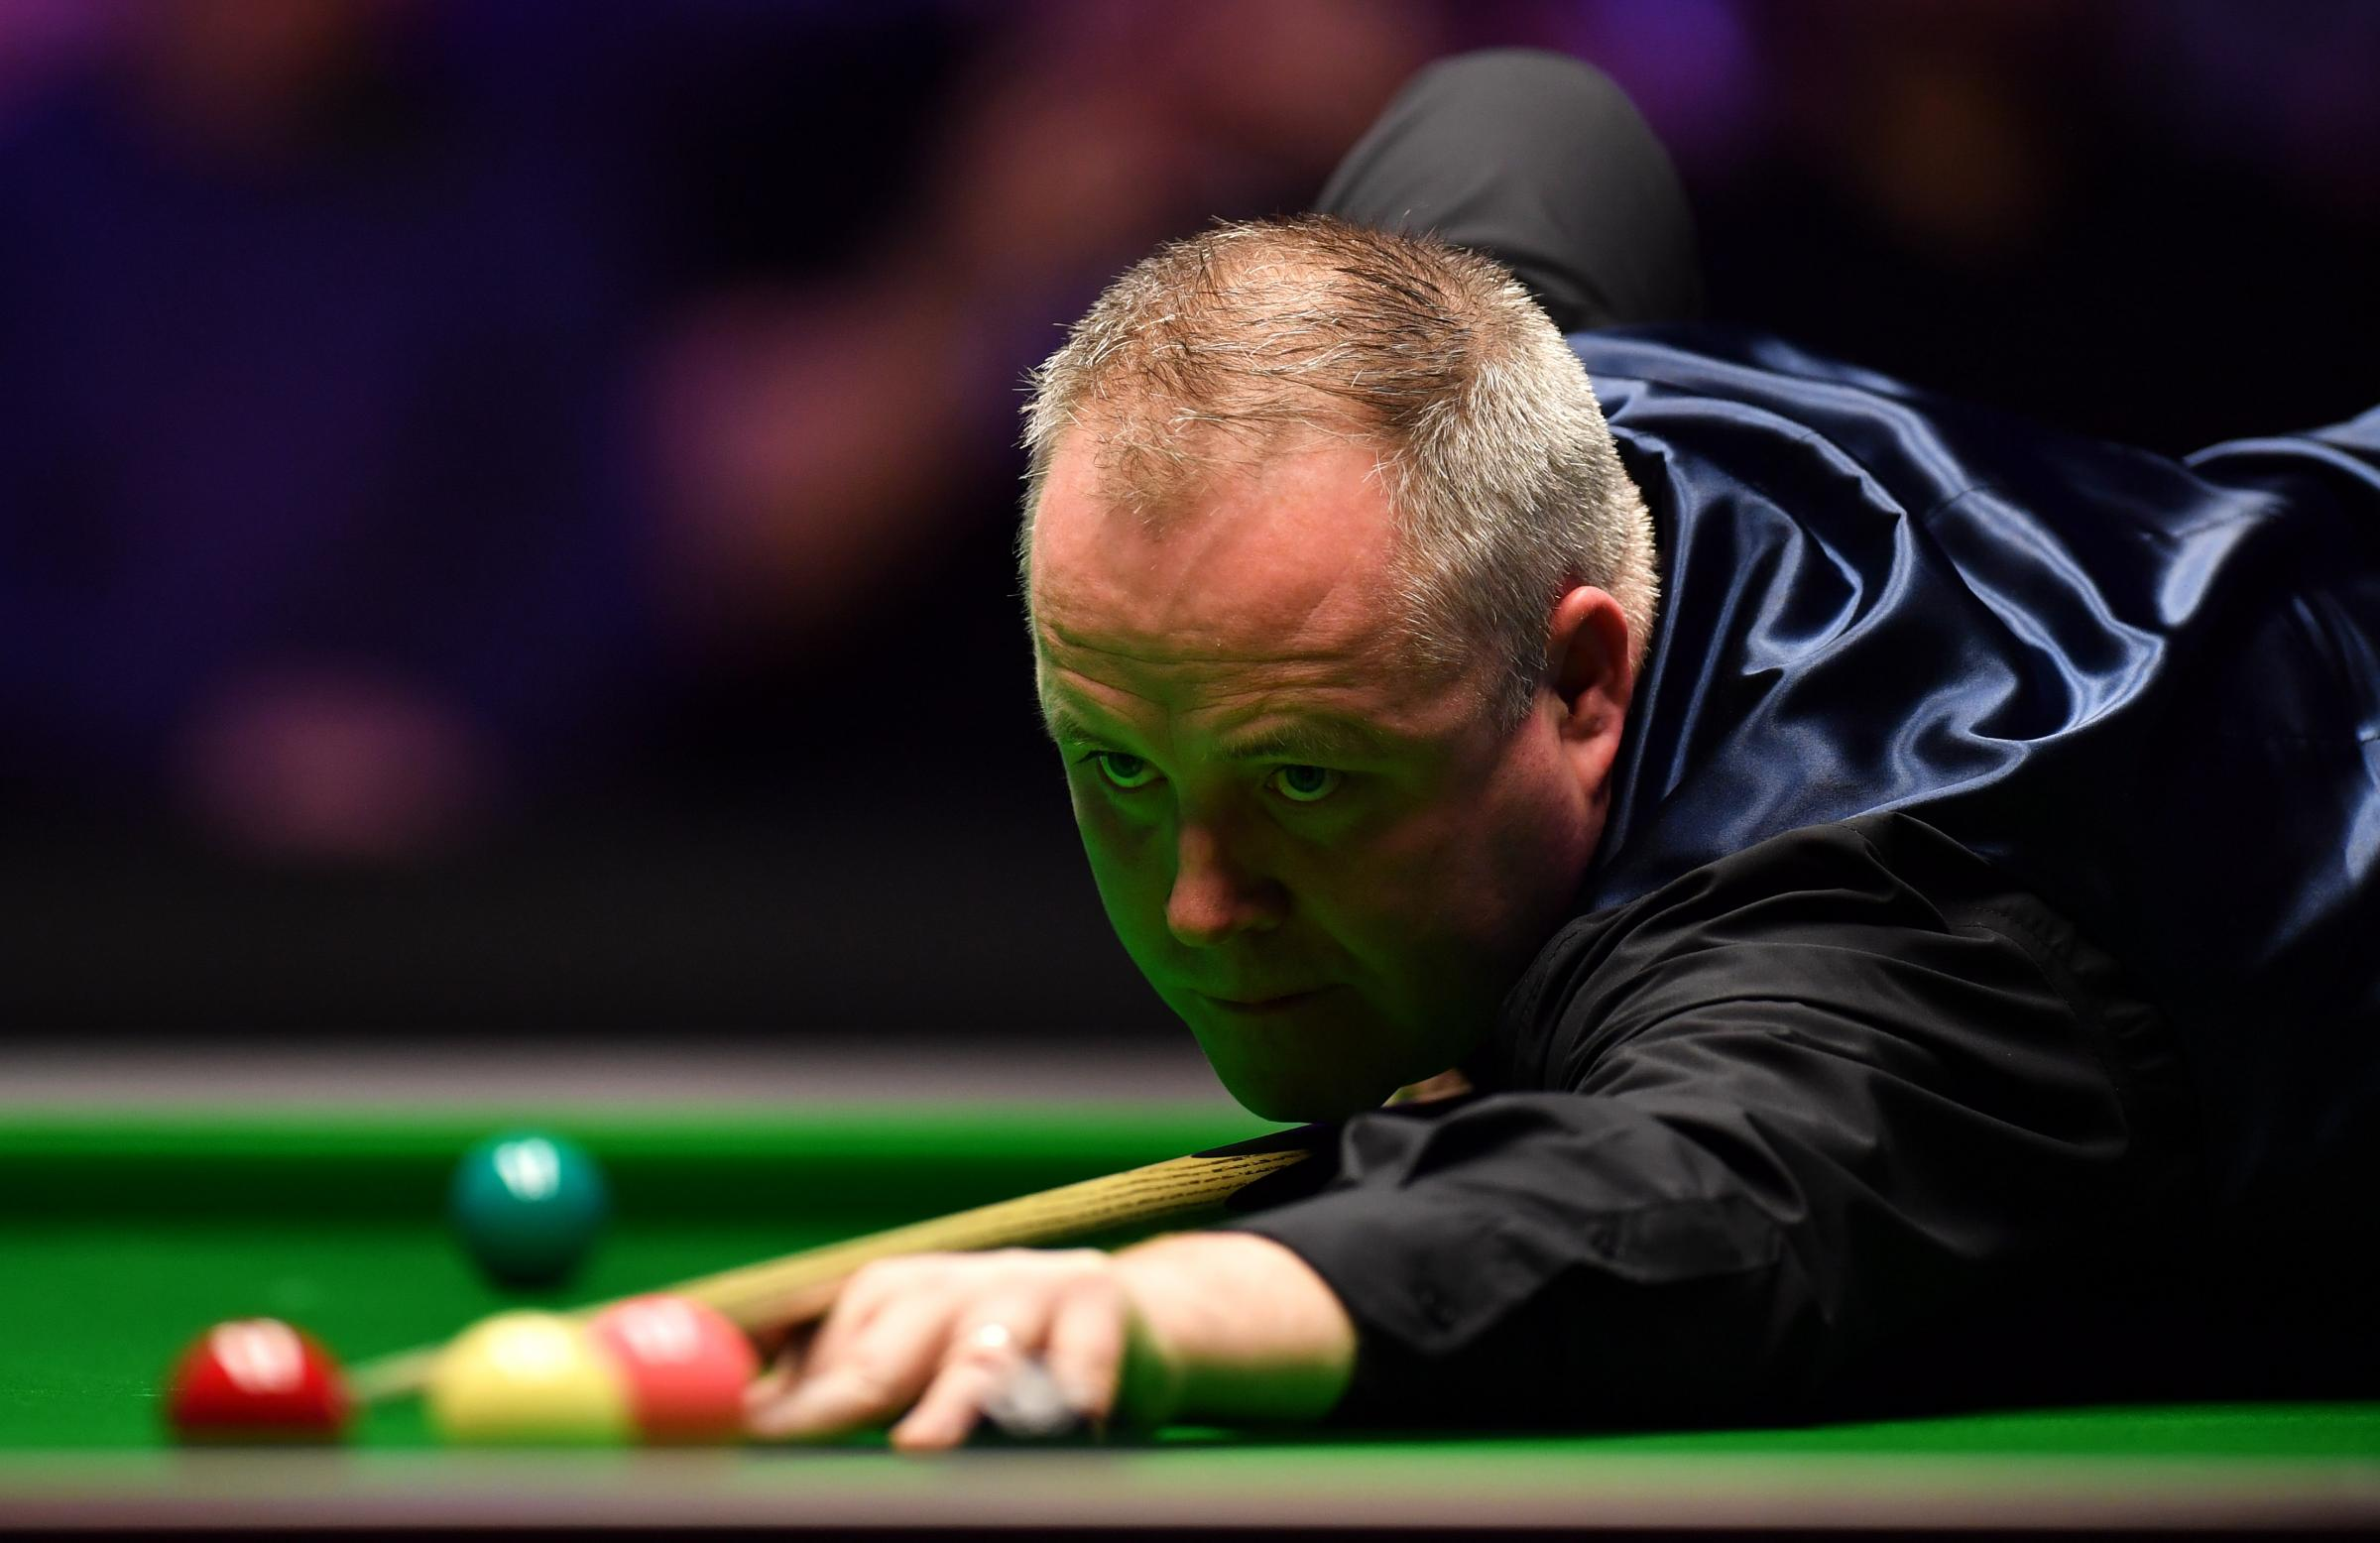 Snooker: Stephen Maguire blows golden chance against Ronnie O'Sullivan